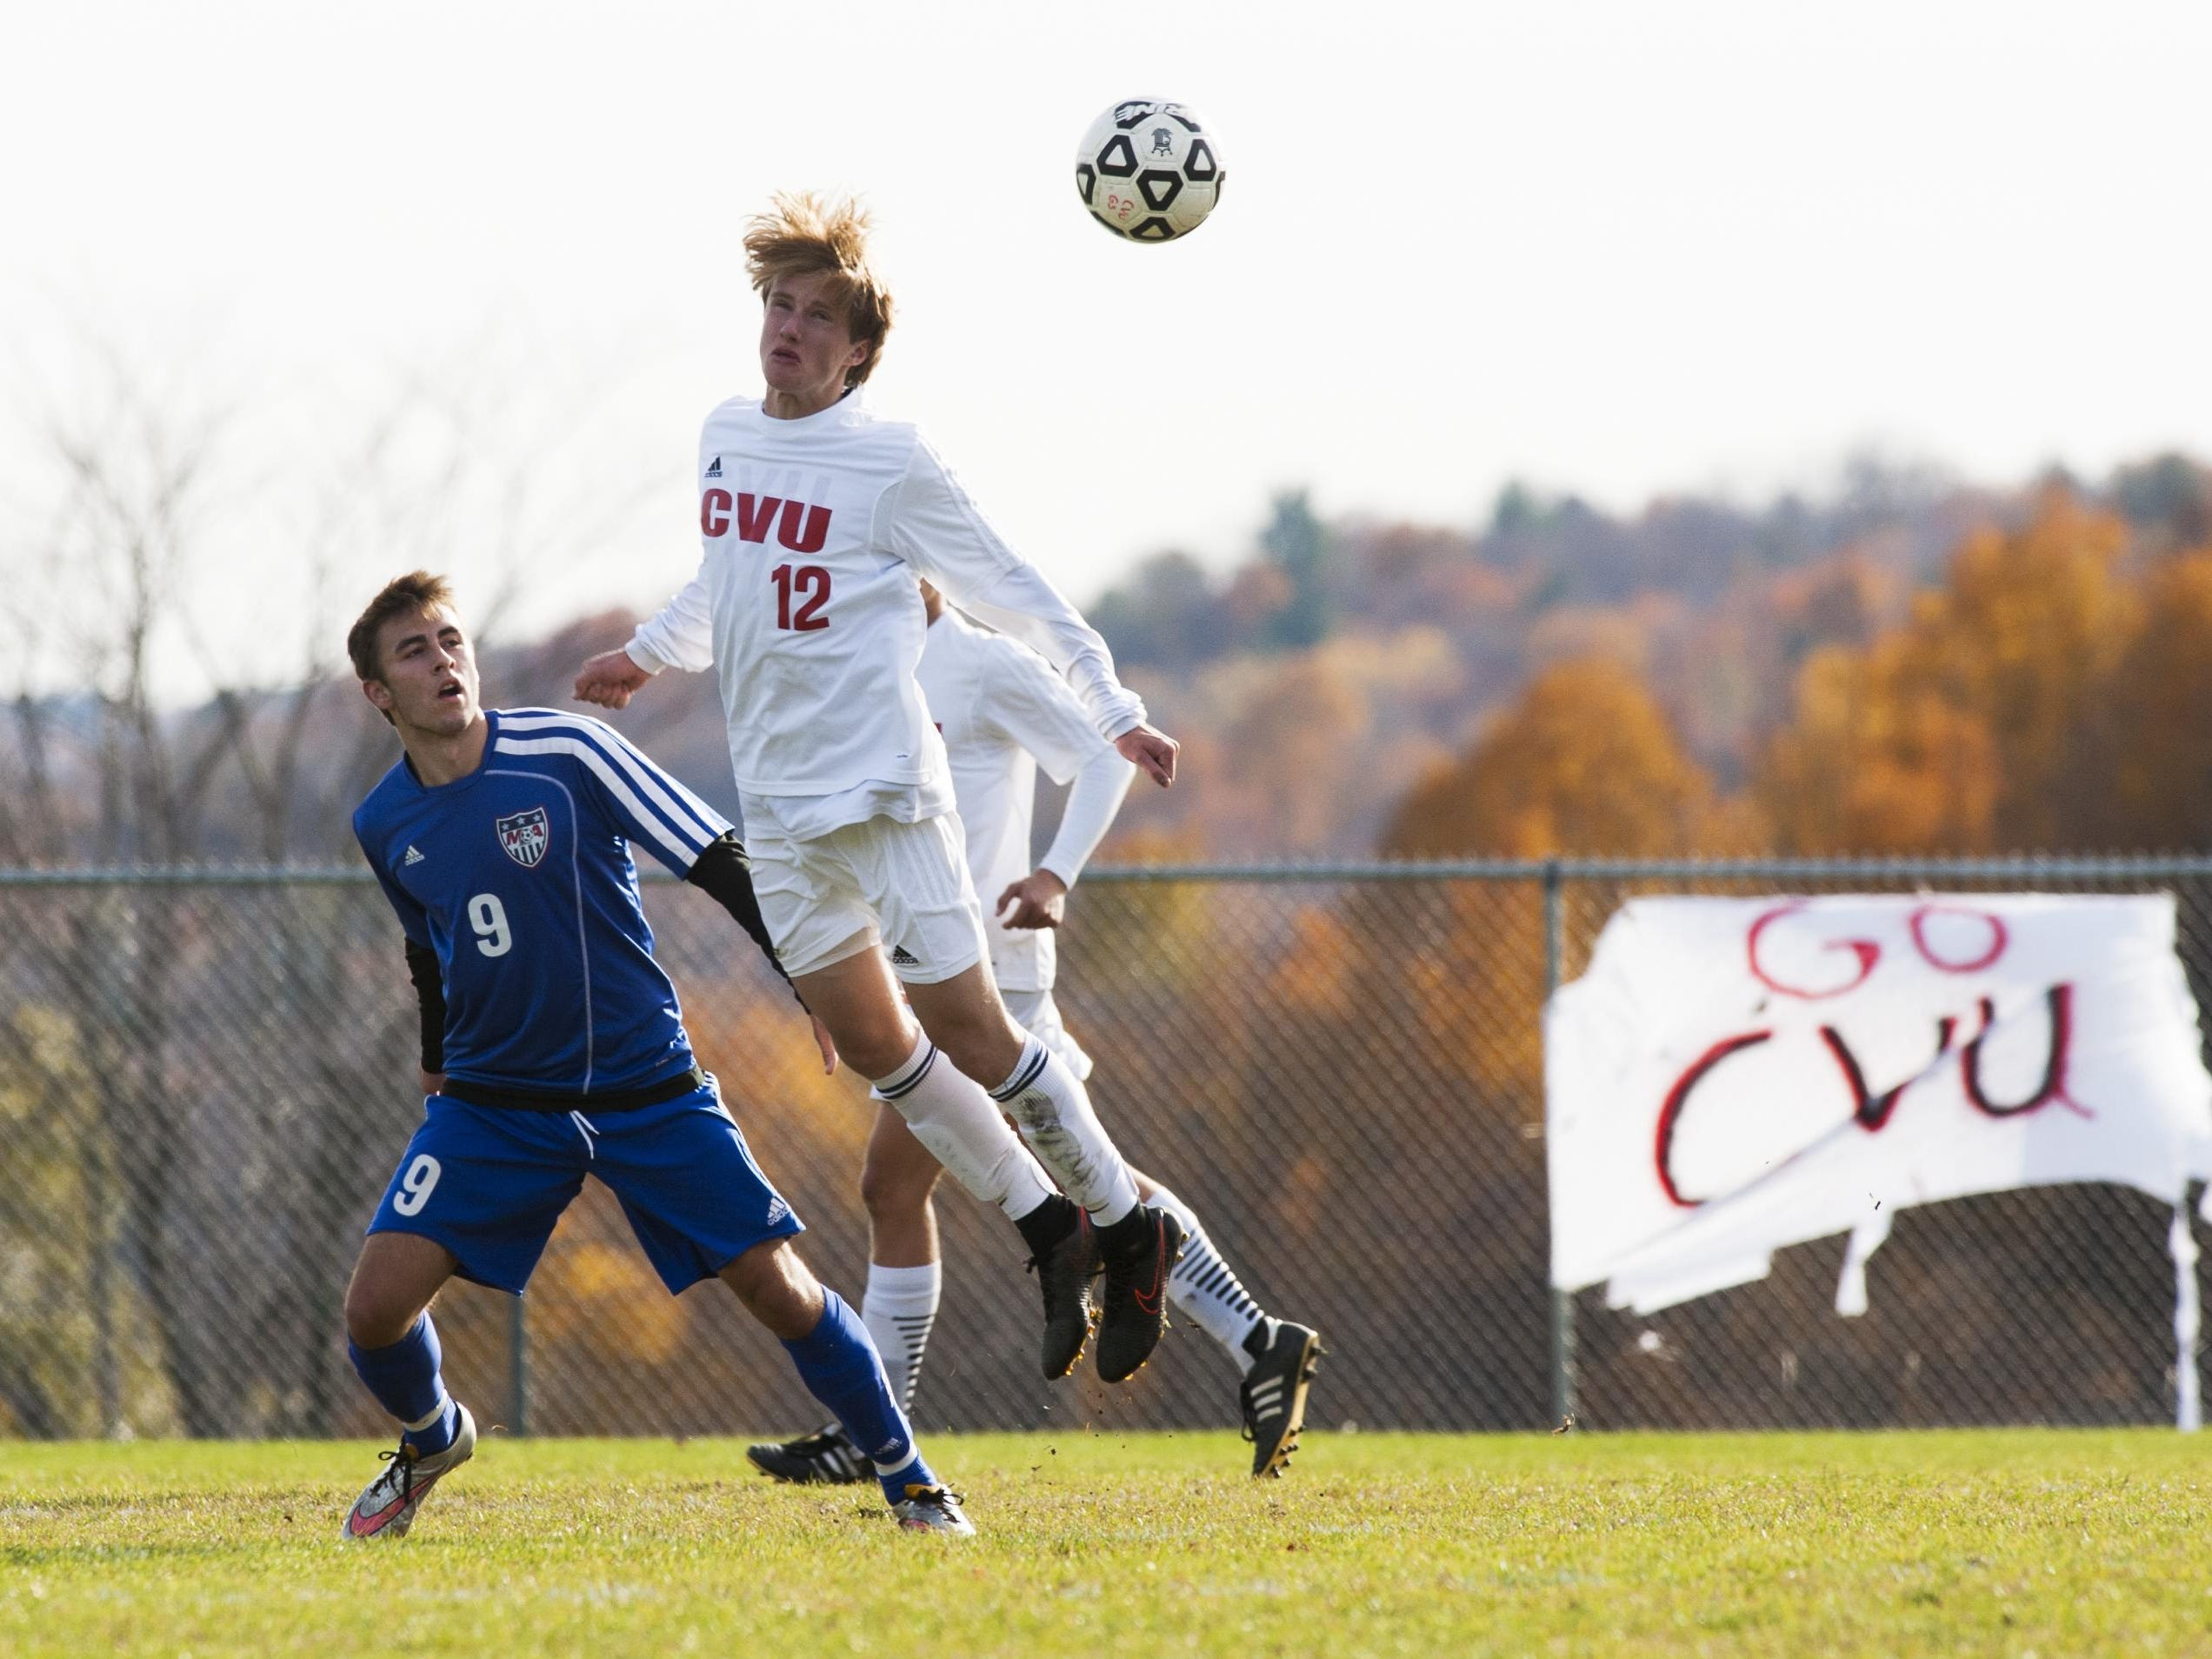 CVU's Joe Parento (12) leaps over Mt Anthony's Carter Bentley (9) to head the ball during the Division I high school boys soccer semifinals Tuesday.